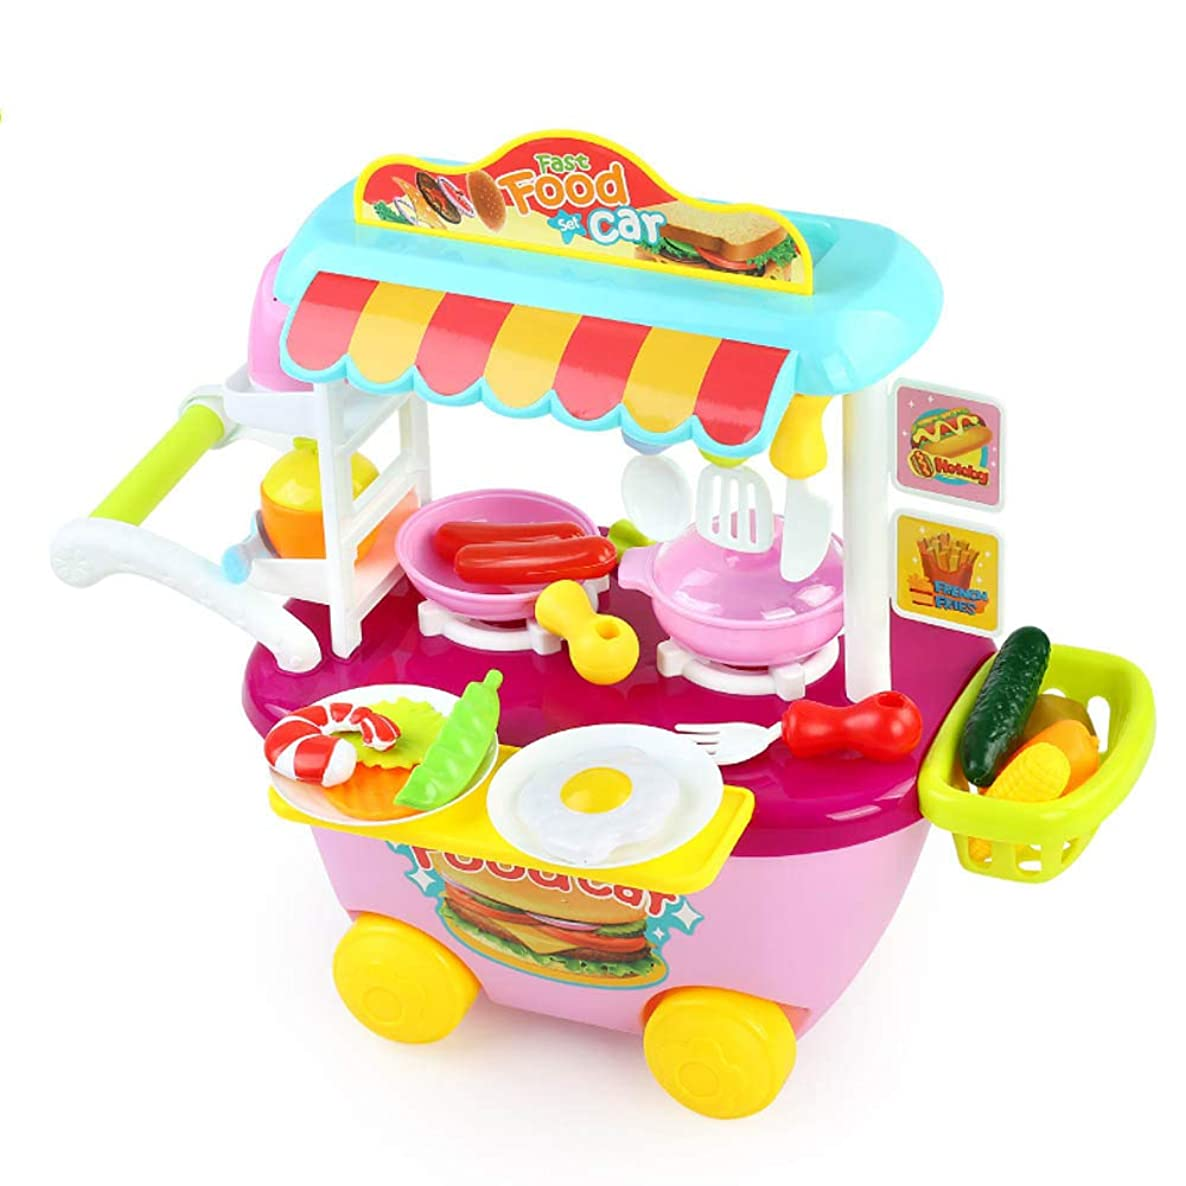 Wotryit Bhildren's Kitchen Play Educational Toys Food Toys,Made of Environmentally Friendly Plastic, Harmless to Children Pink